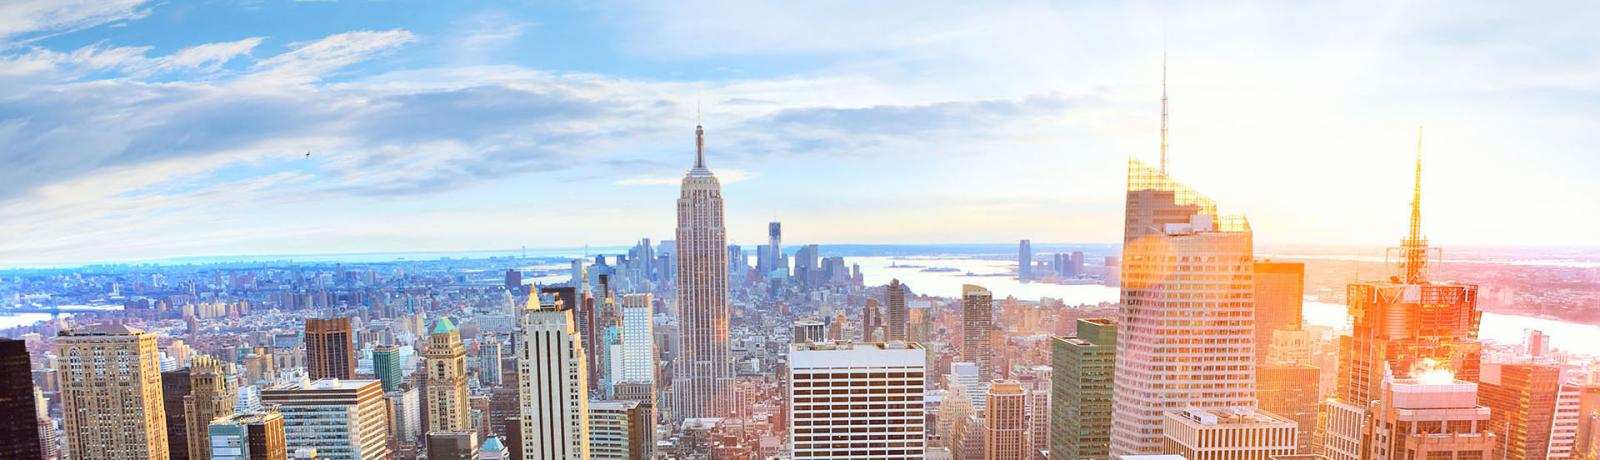 Die top 10 sehensw rdigkeiten in new york for What to do in new york new york